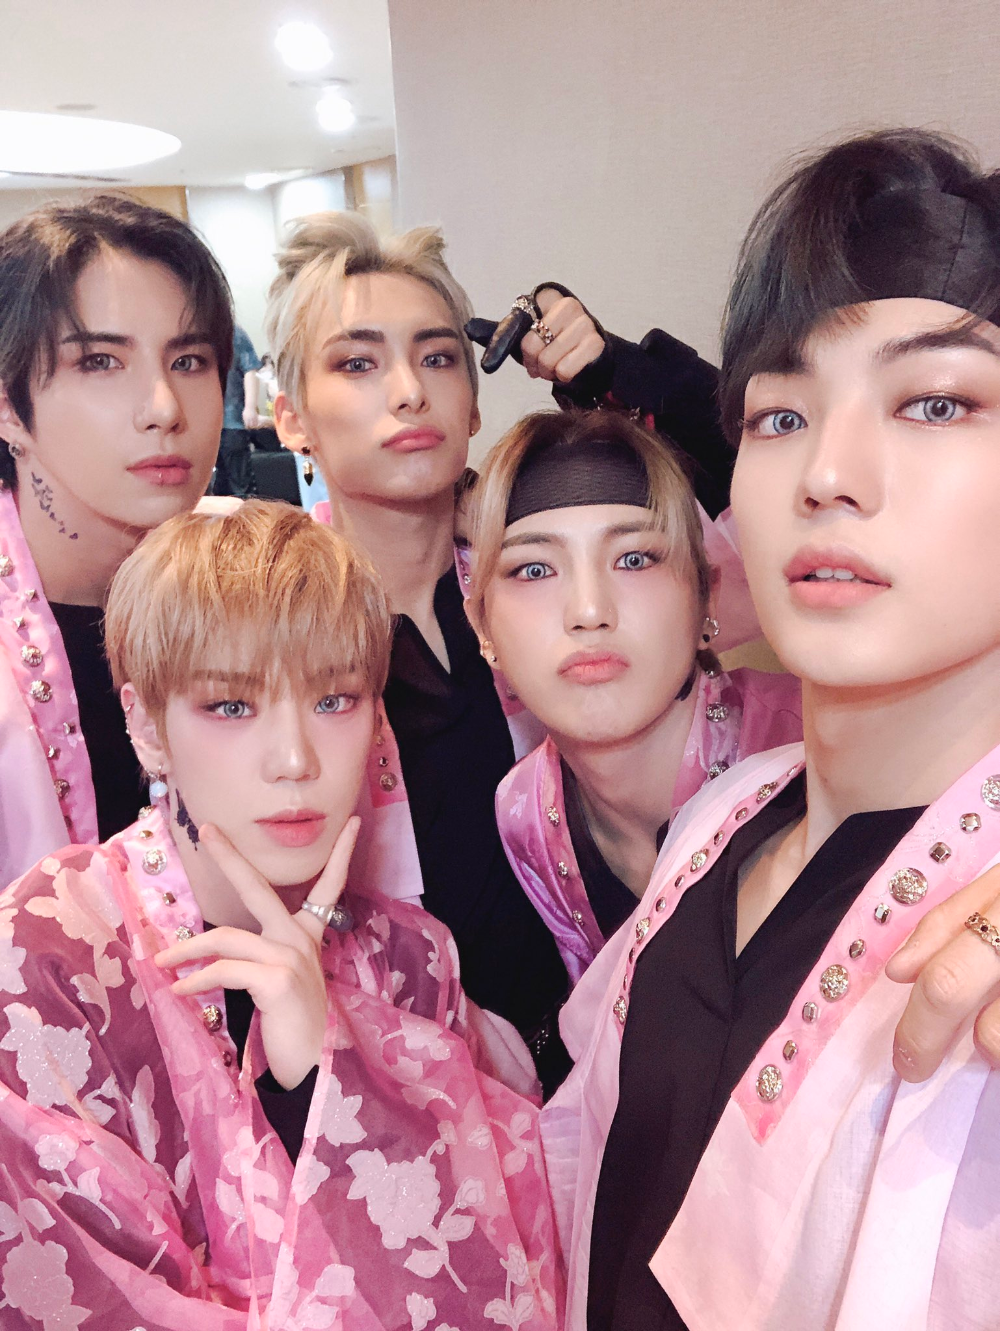 official A.C.E on Twitter